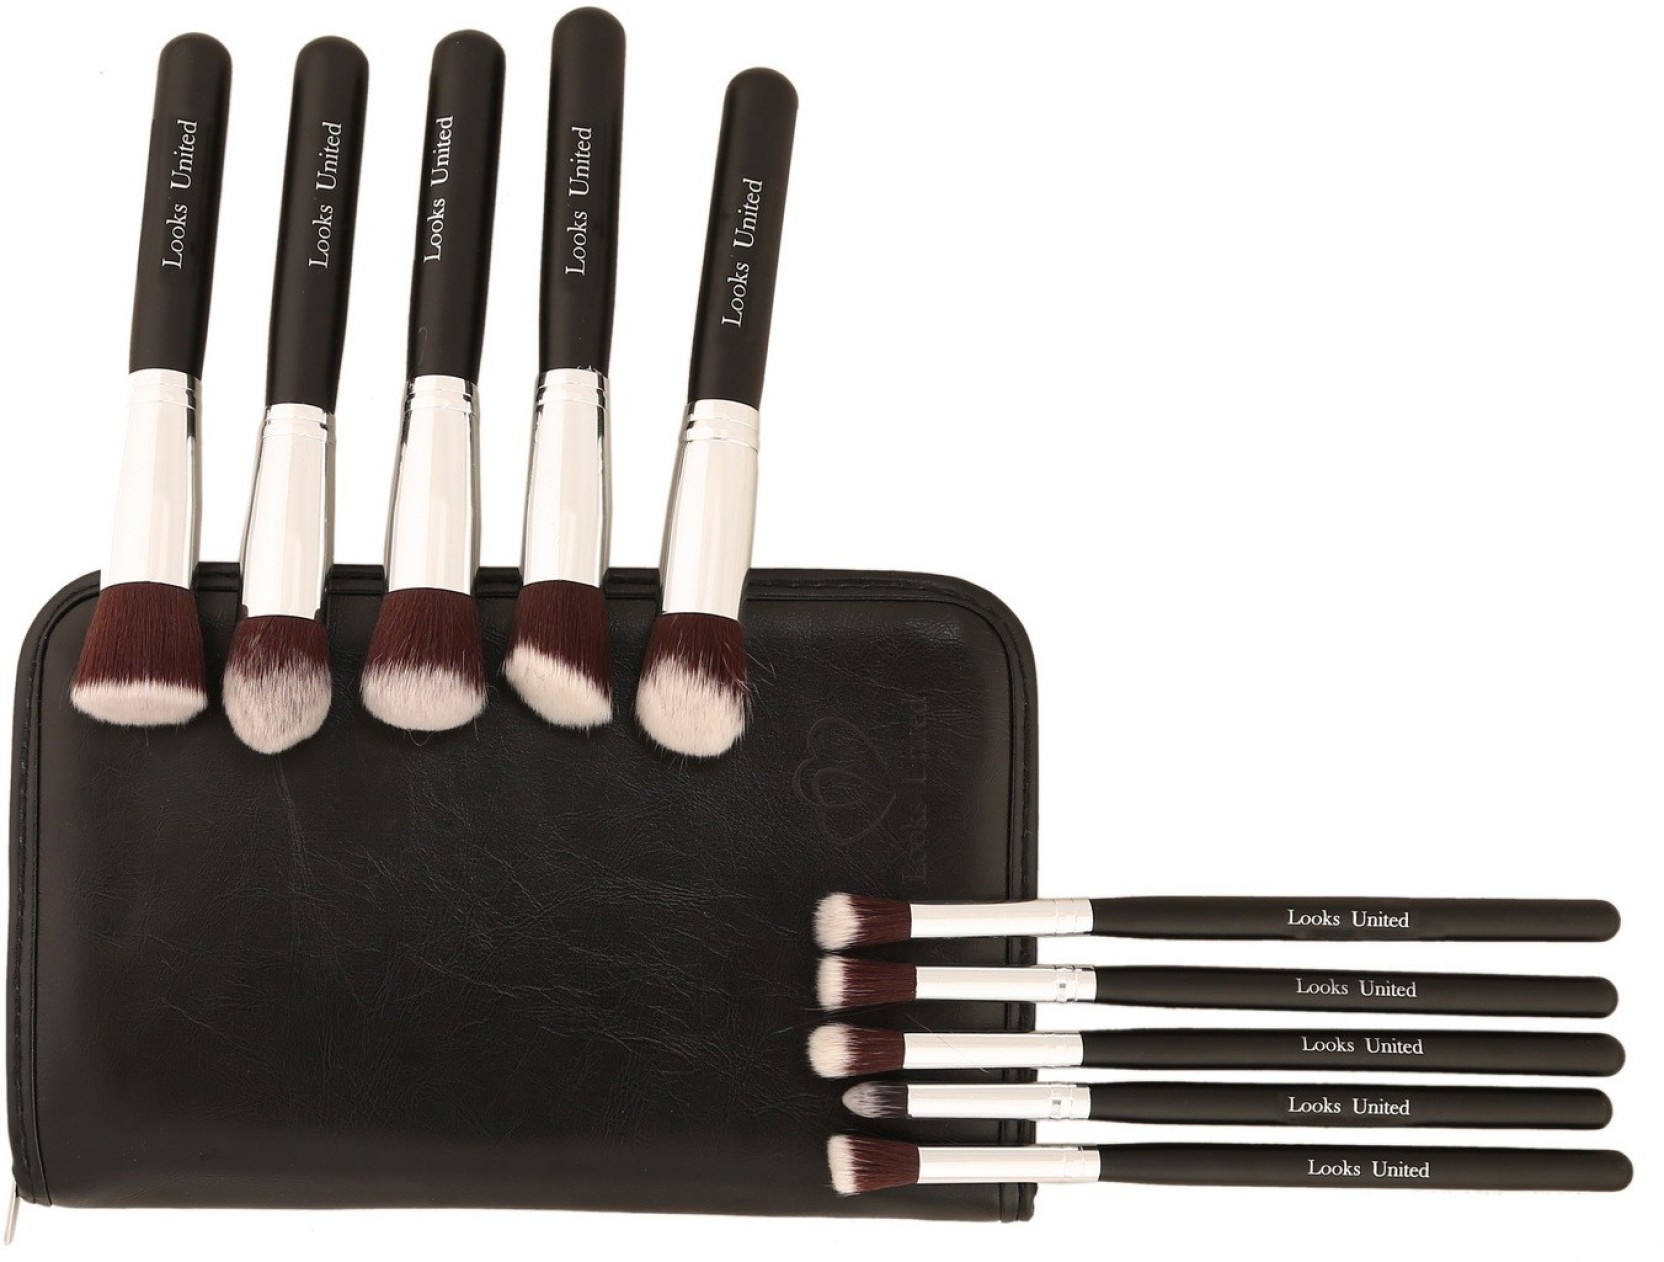 Looks United Premium Cosmetic Makeup Brush Set With Leather Pouch On Offer